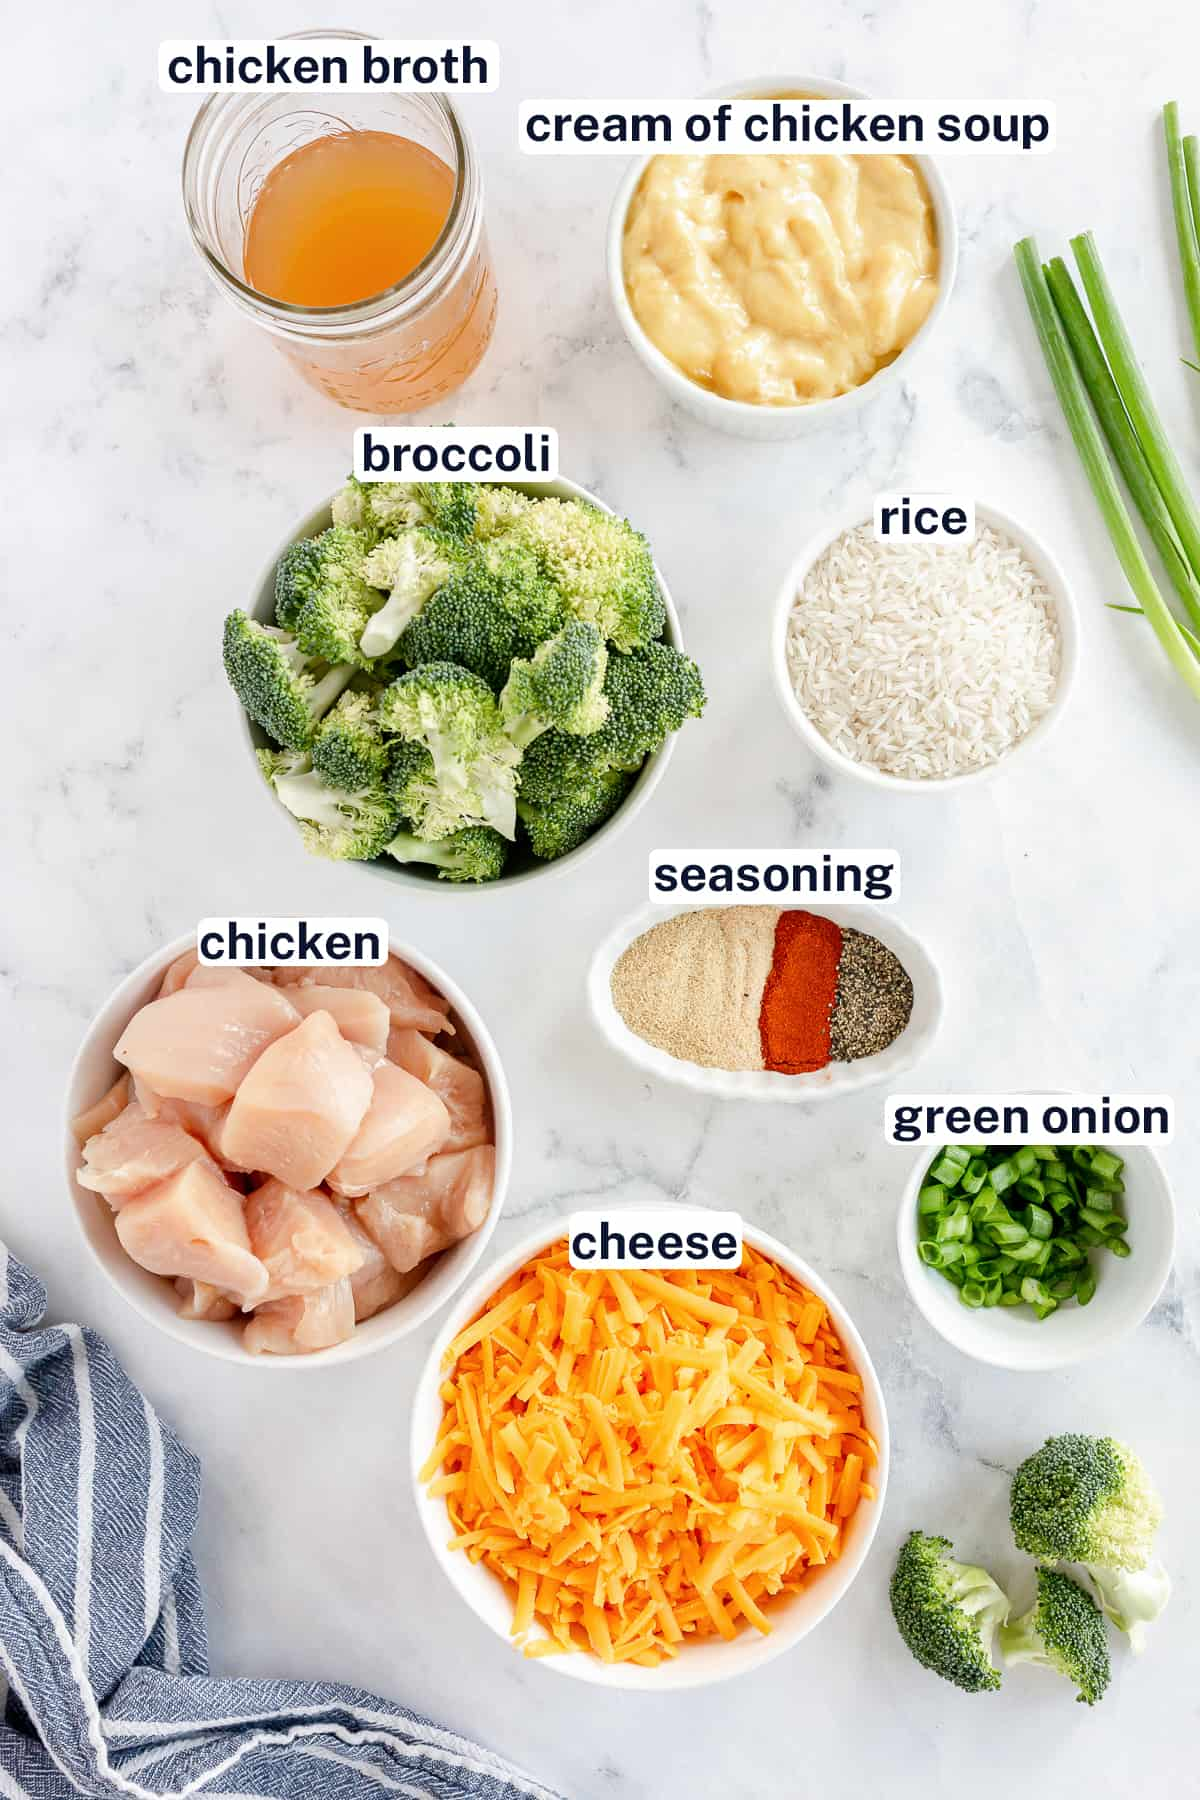 Ingredients for rice bread with chicken and broccoli with text overlay.